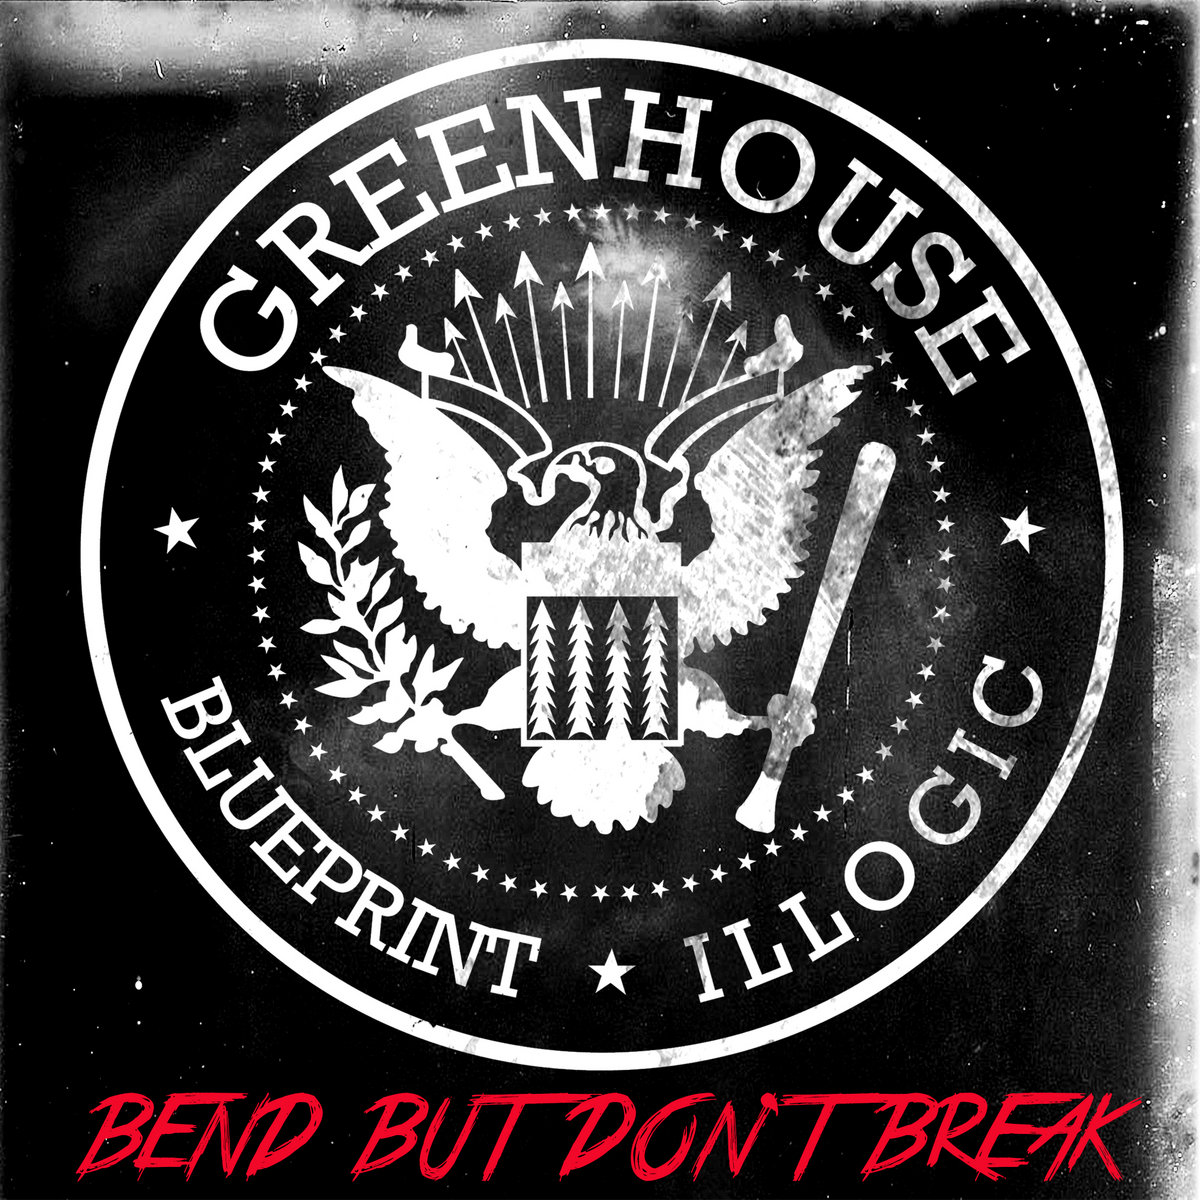 Bend but dont break deluxe version greenhouse blueprint illogic by greenhouse blueprint illogic malvernweather Images